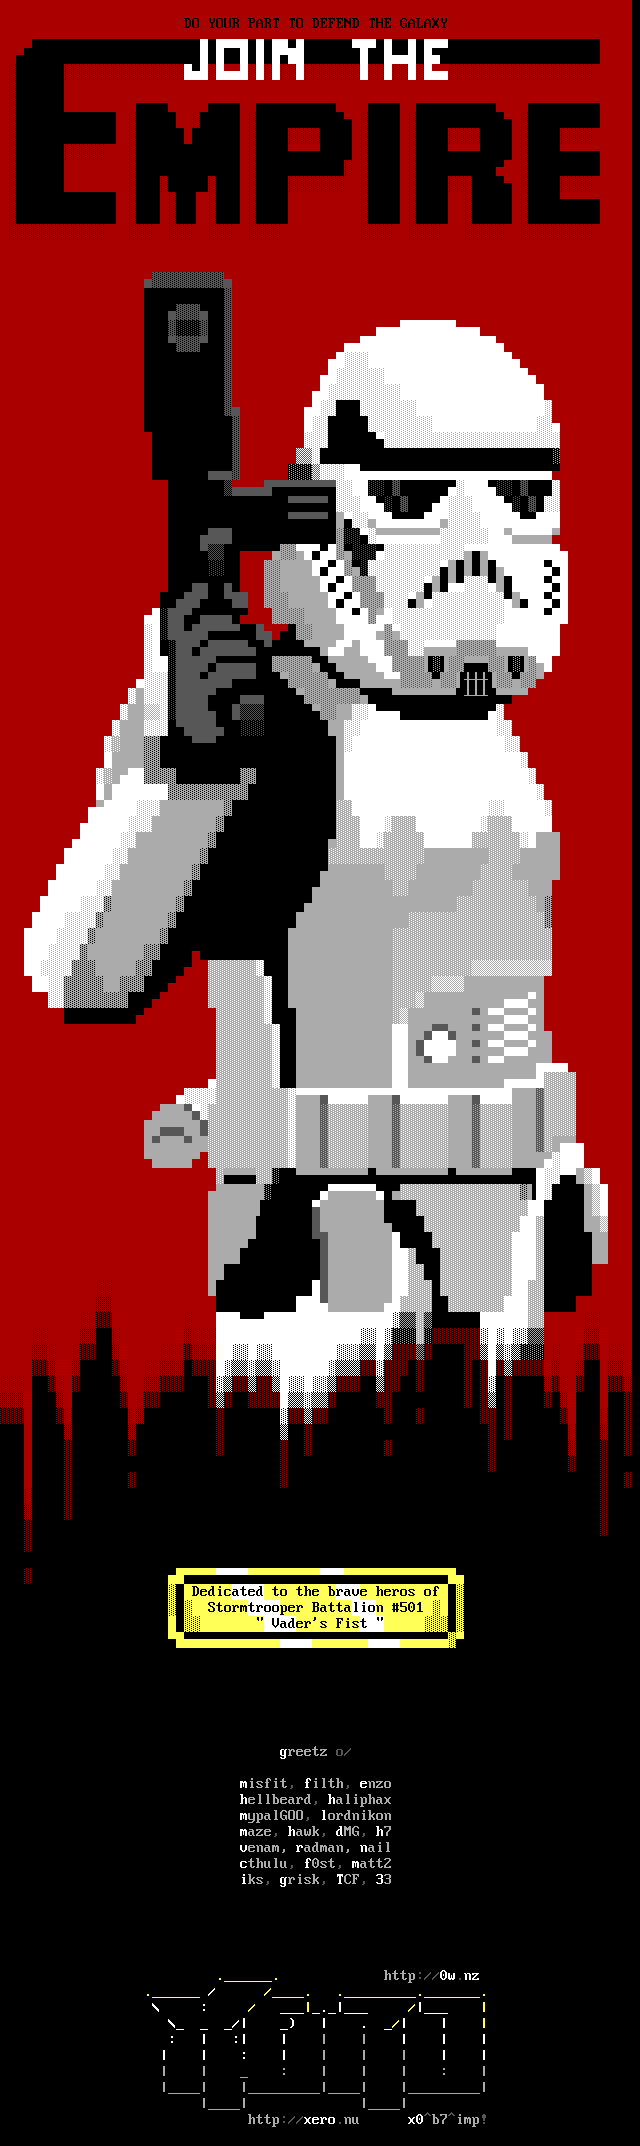 star wars, detention block, detention block aa-23, movie, movie character, storm trooper, weapon, gun, laser, soldier, white, red, empire, poster, xero, xer0, x0, xo